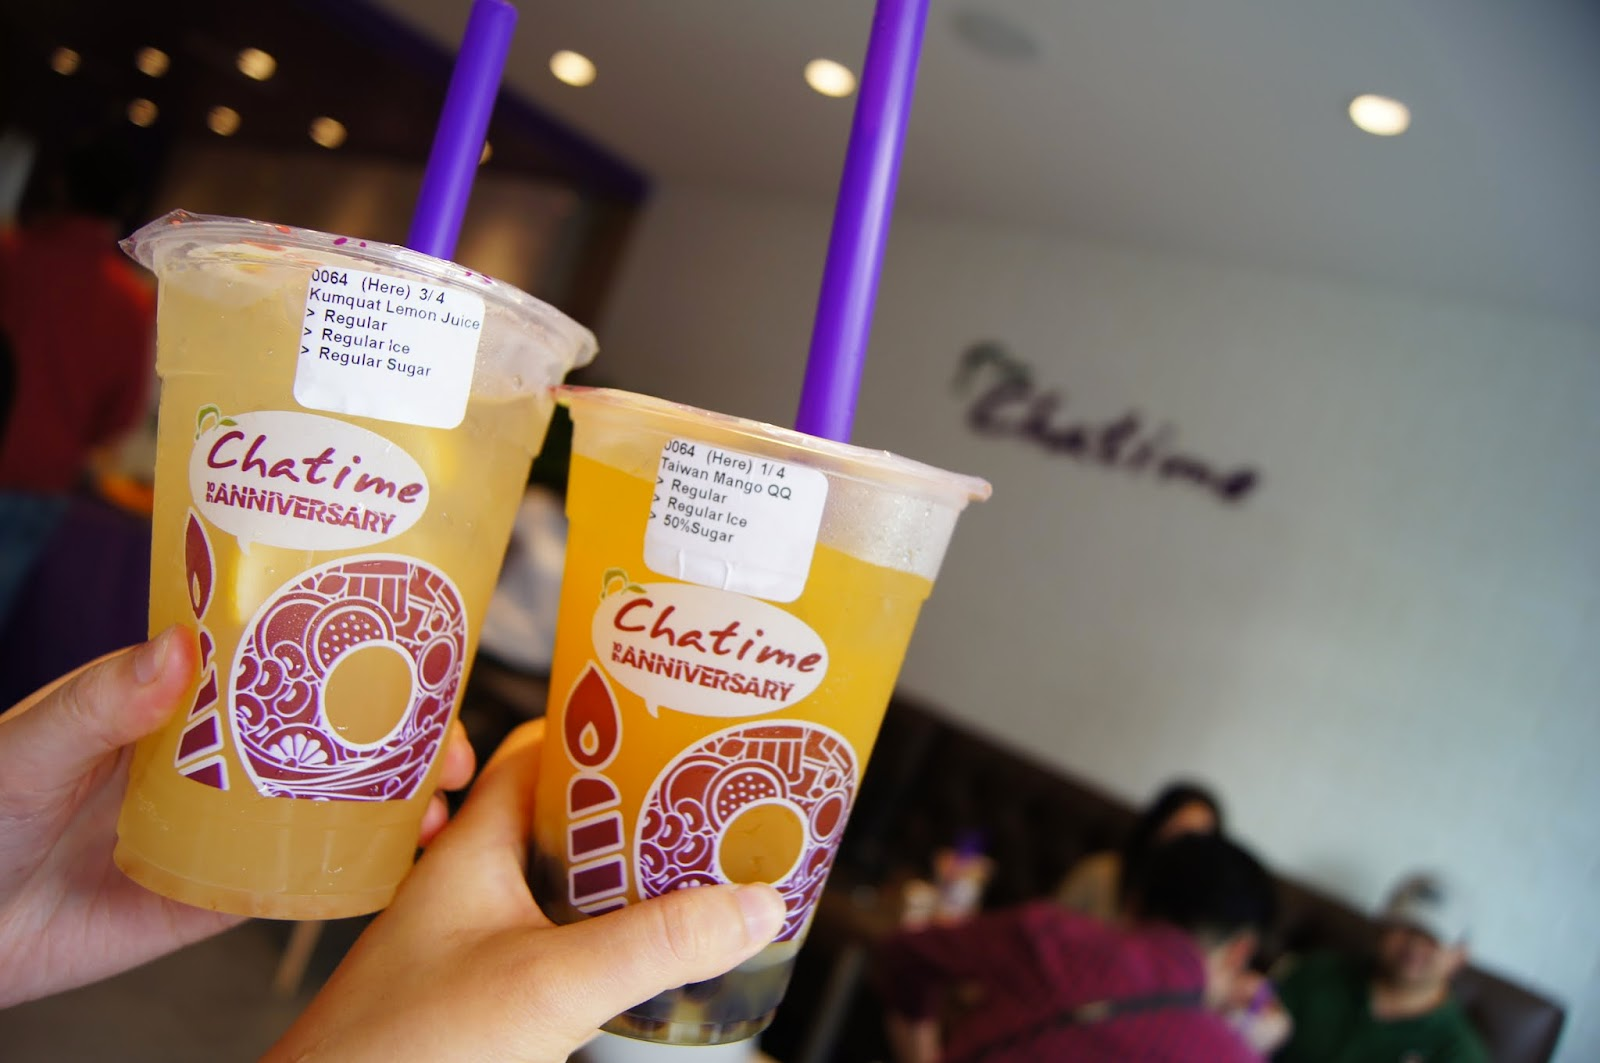 Chatime herbal tea - Known As The 1 Bubble Tea Brand In The World Chatime Delivers High Quality Drinks In A Very Customizable Orders Chatime Is A Franchise That Originated In